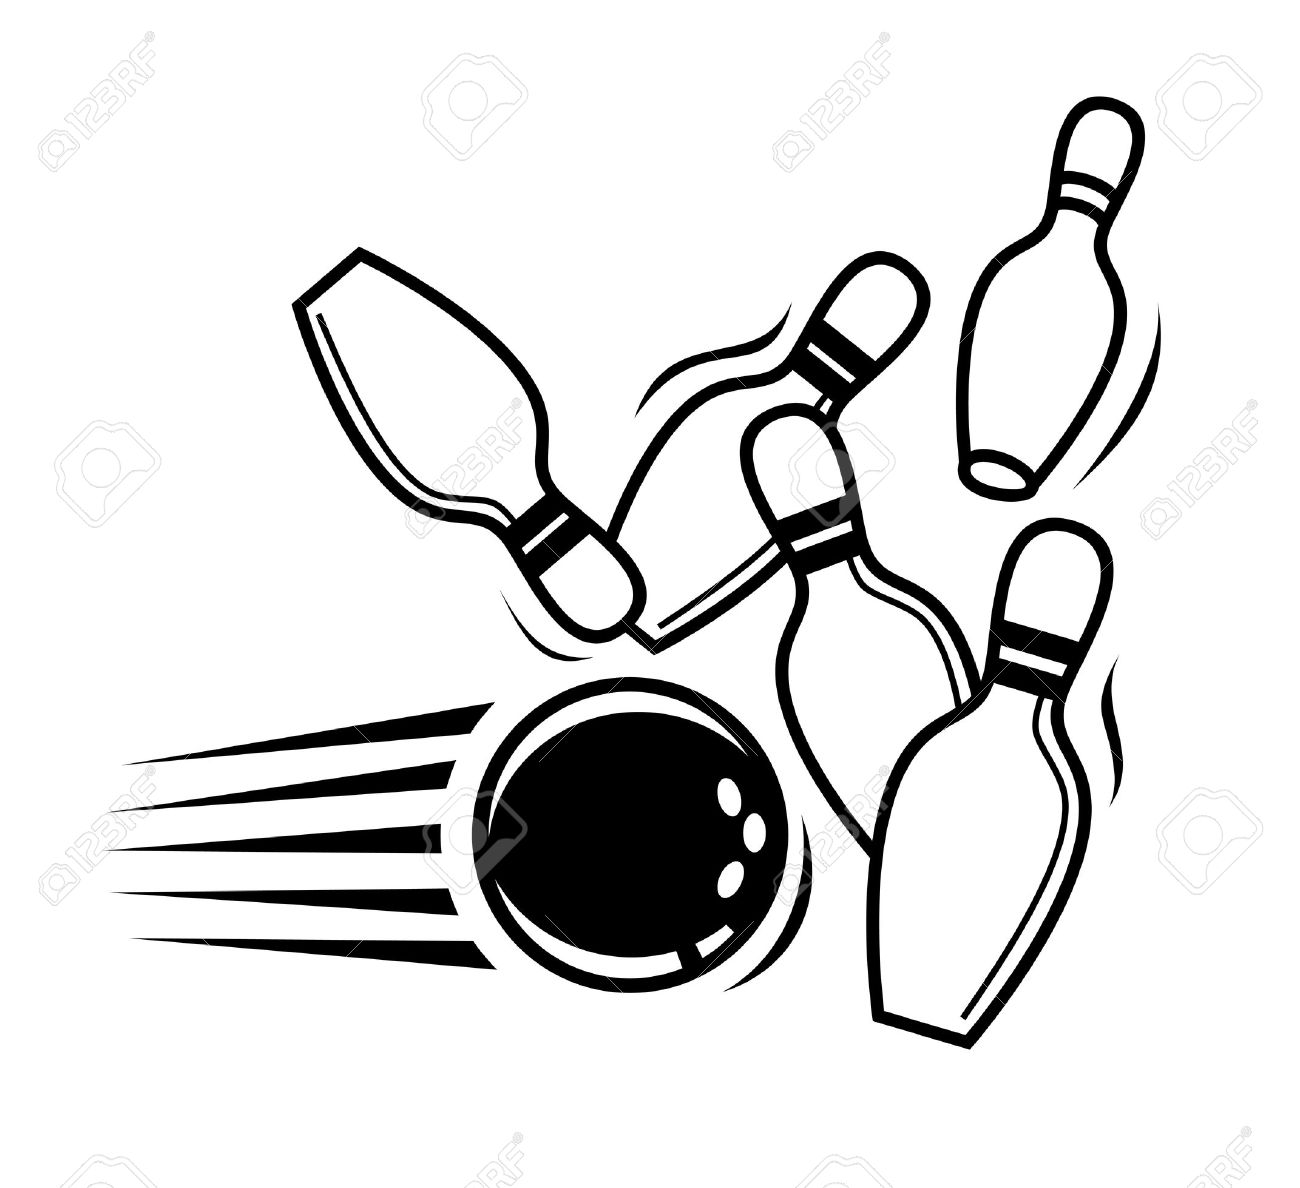 Bowling Pins Drawing At Free For Personal Use 30 Hp Johnson Wiring Diagram 1300x1188 Clipart Suggestions Download